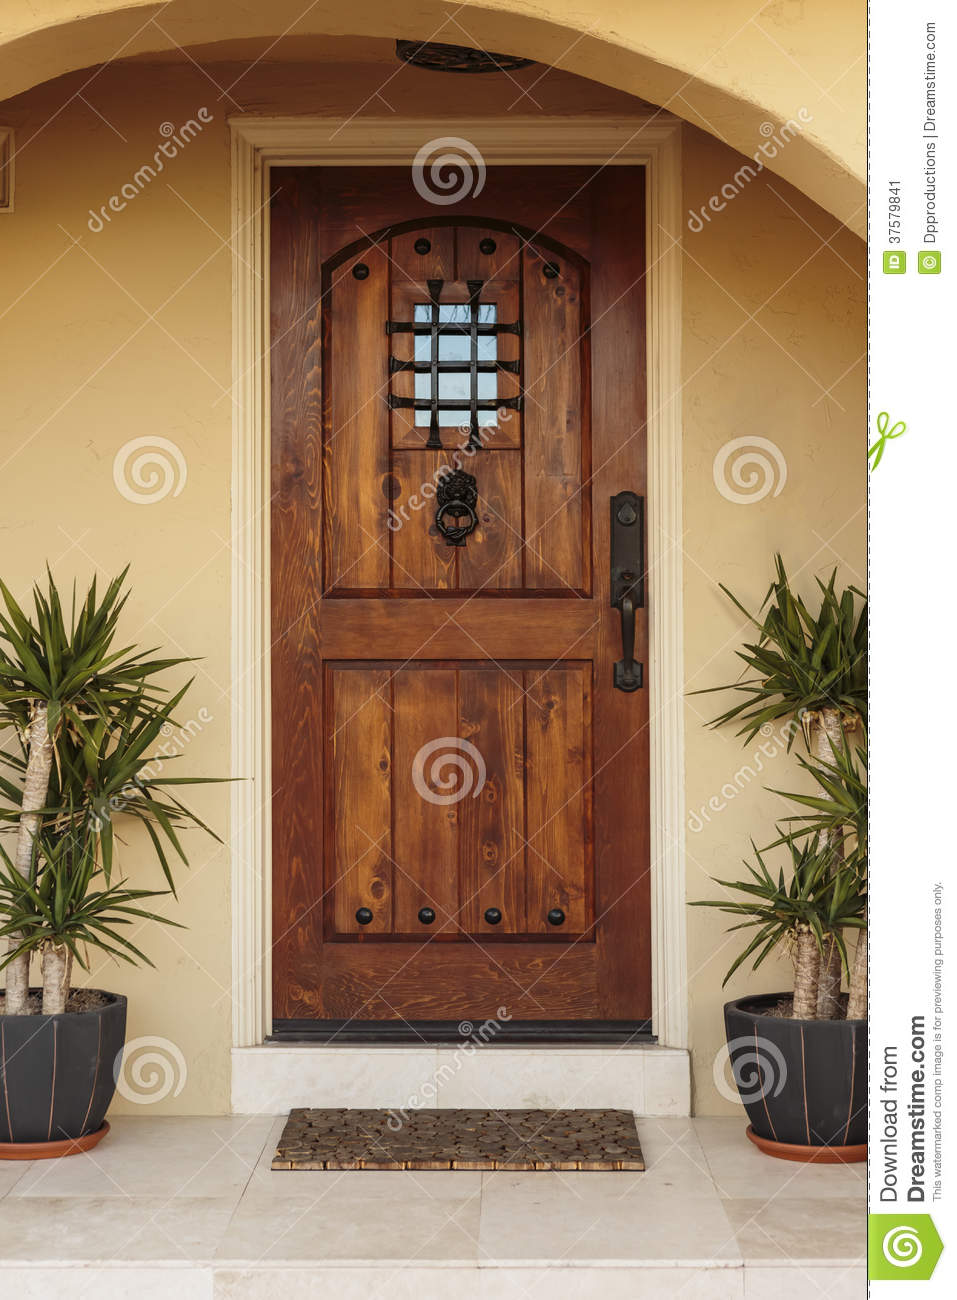 Closed Ornate Front Door Of An Upscale Stucco House Stock